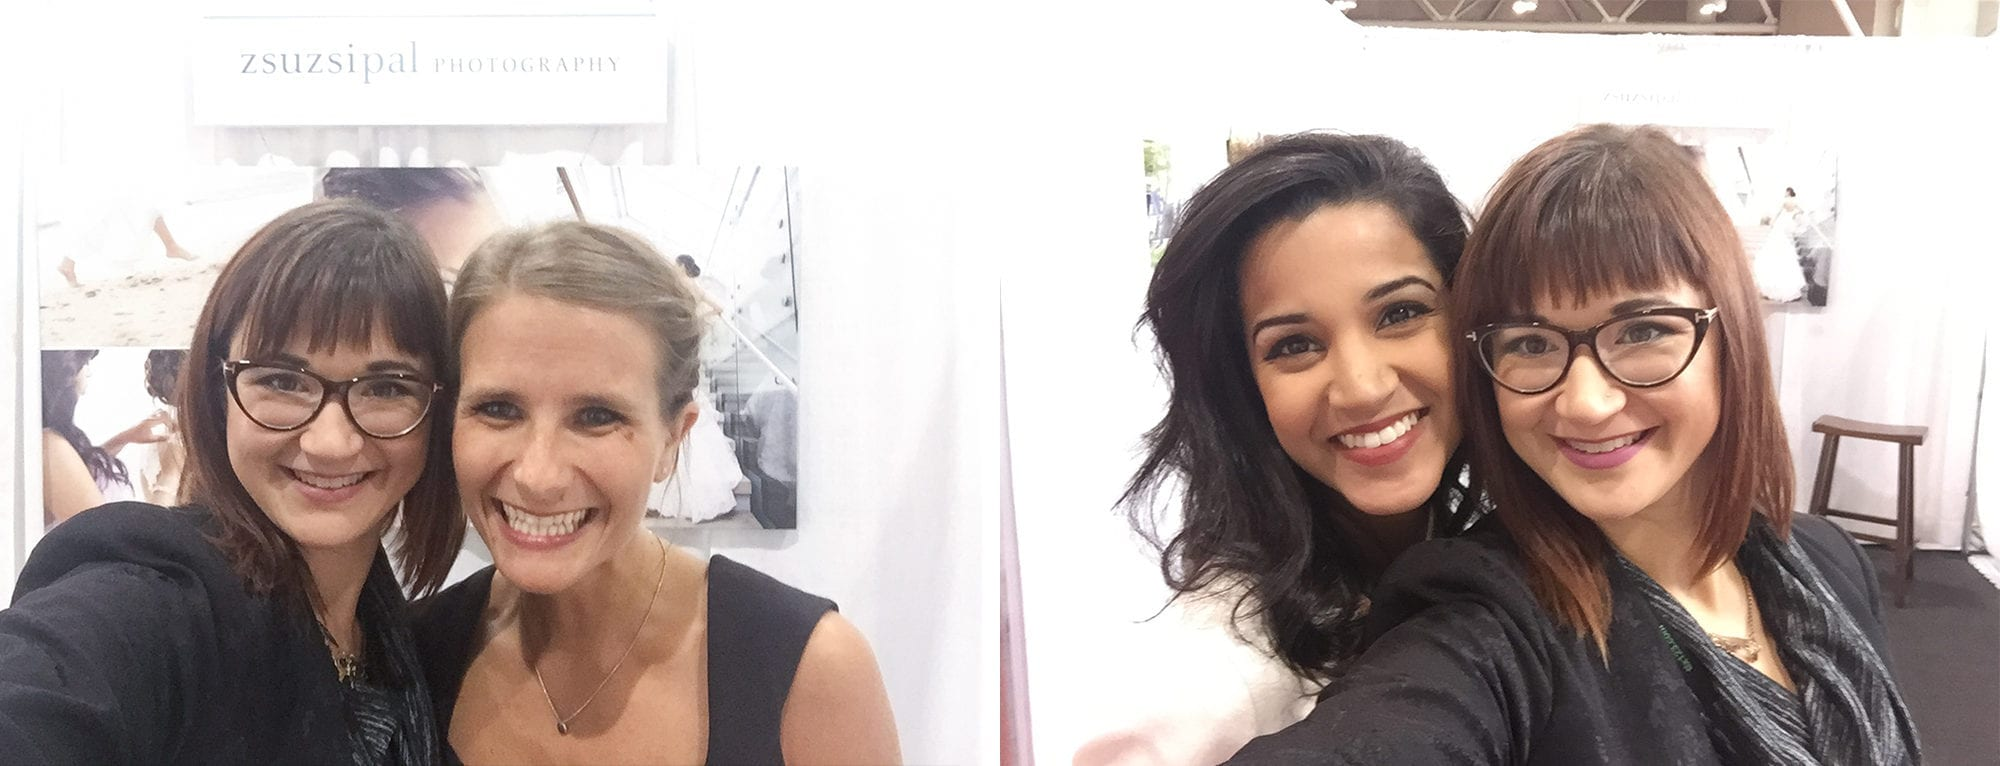 Friends Canada's Bridal Show Booth Zsuzsi Pal Photography